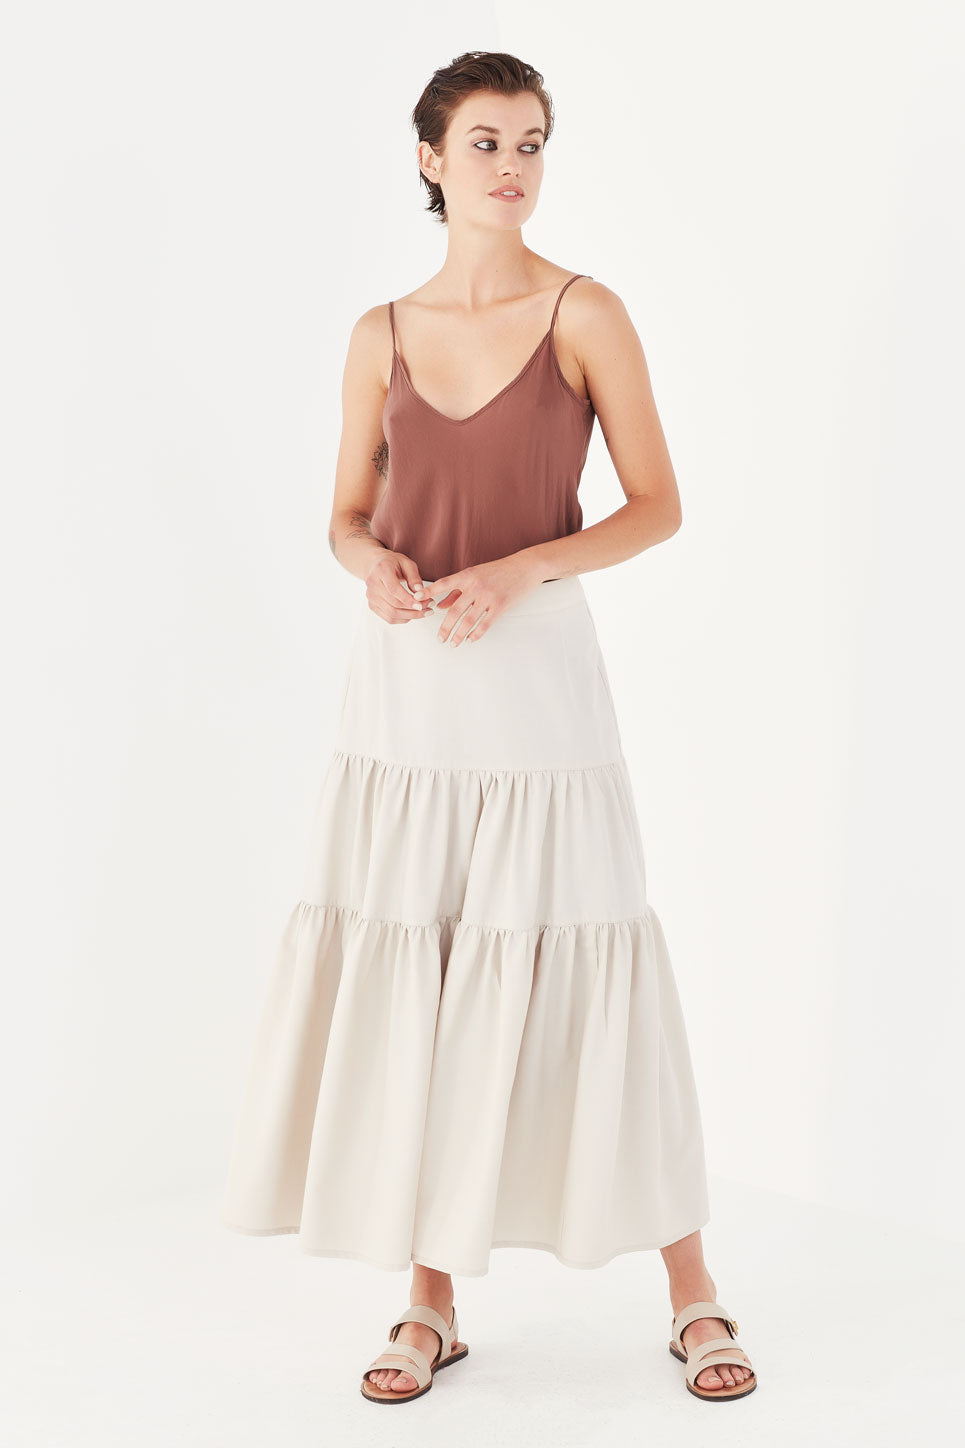 The Iris Skirt in Bone